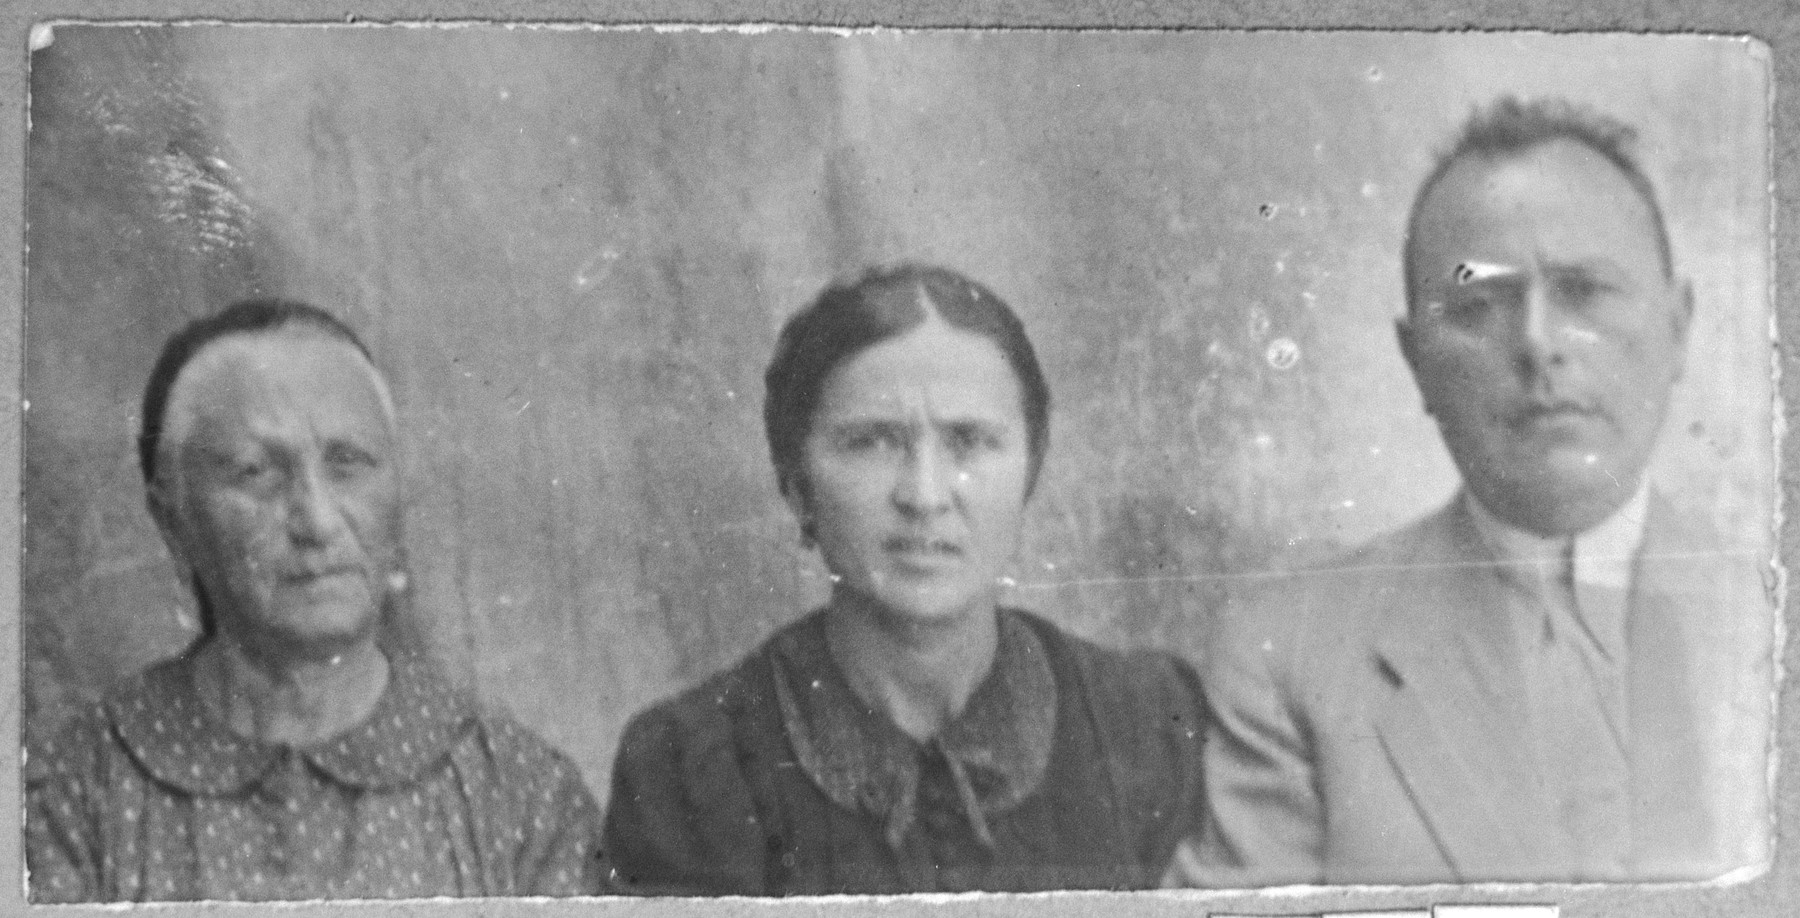 Portrait of Ovadia Pardo, son of Haim Pardo, Ovadia's wife, Arnesta, and Haim's wife, Djoya.  Ovadia was a Boutique Owner.  They lived at Karagoryeva 68 in Bitola.